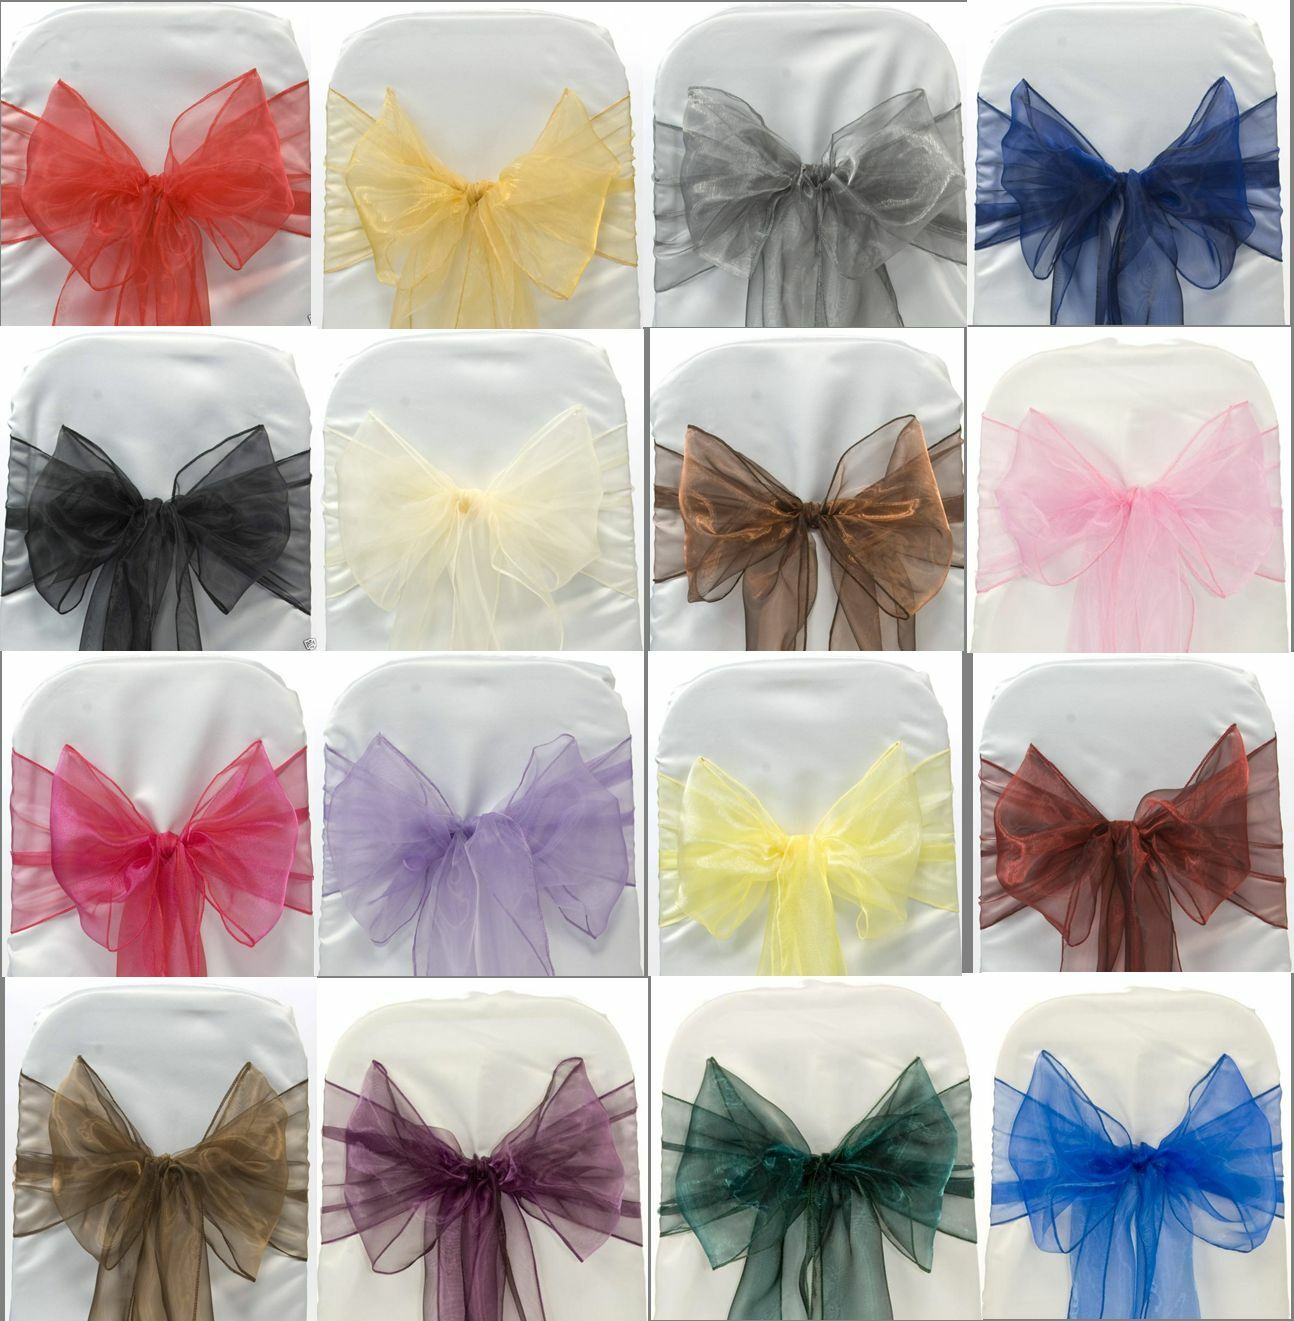 ORGANZA SASHES CHAIR COVER BOW SASH WIDER SASHES FOR A FULLER BOW MORE COLOURS